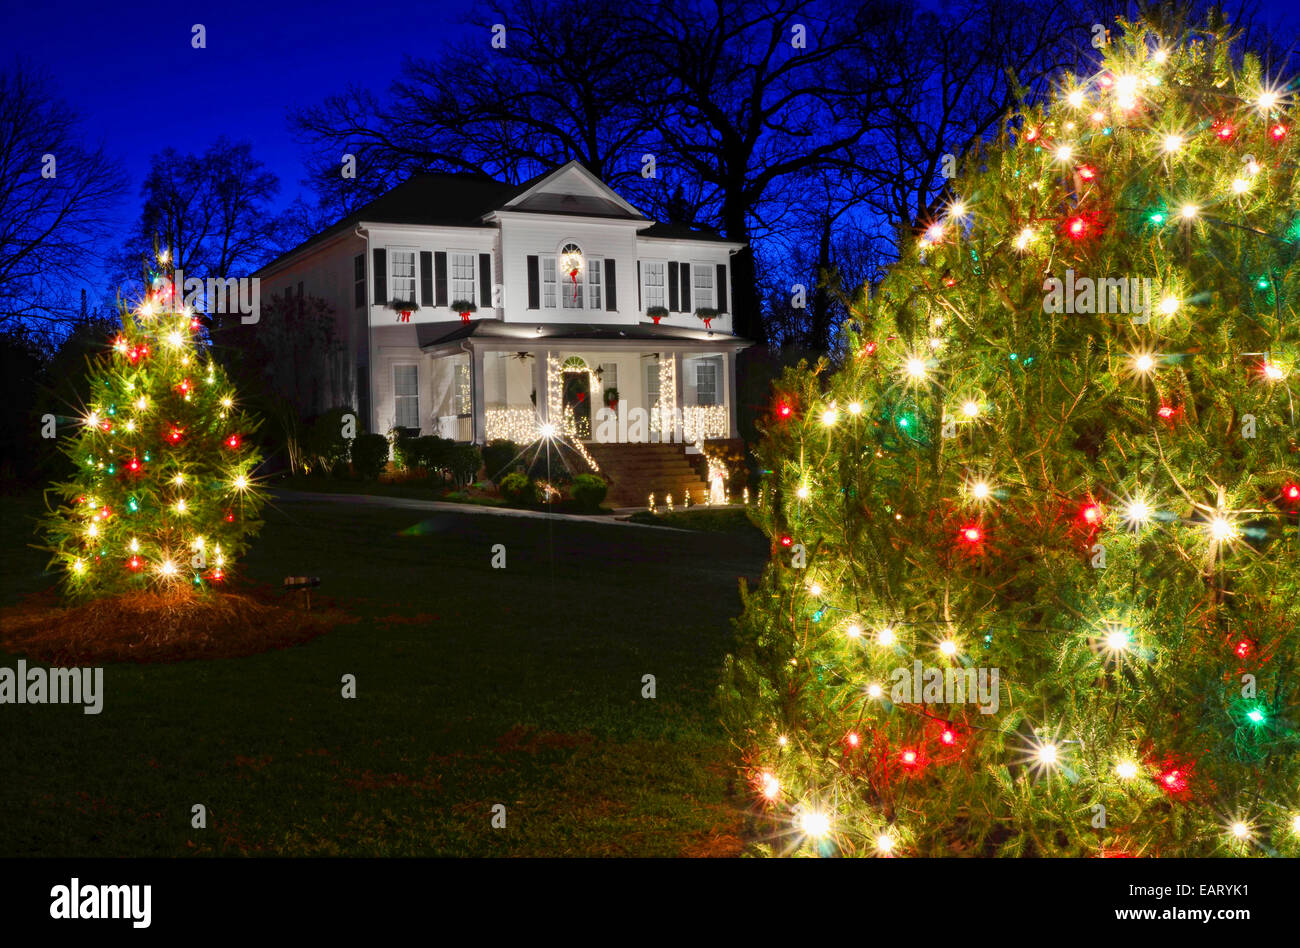 outdoor christmas trees have been decorated with red green and white lights and shot against - Christmas Tree With White Lights And Red Decorations